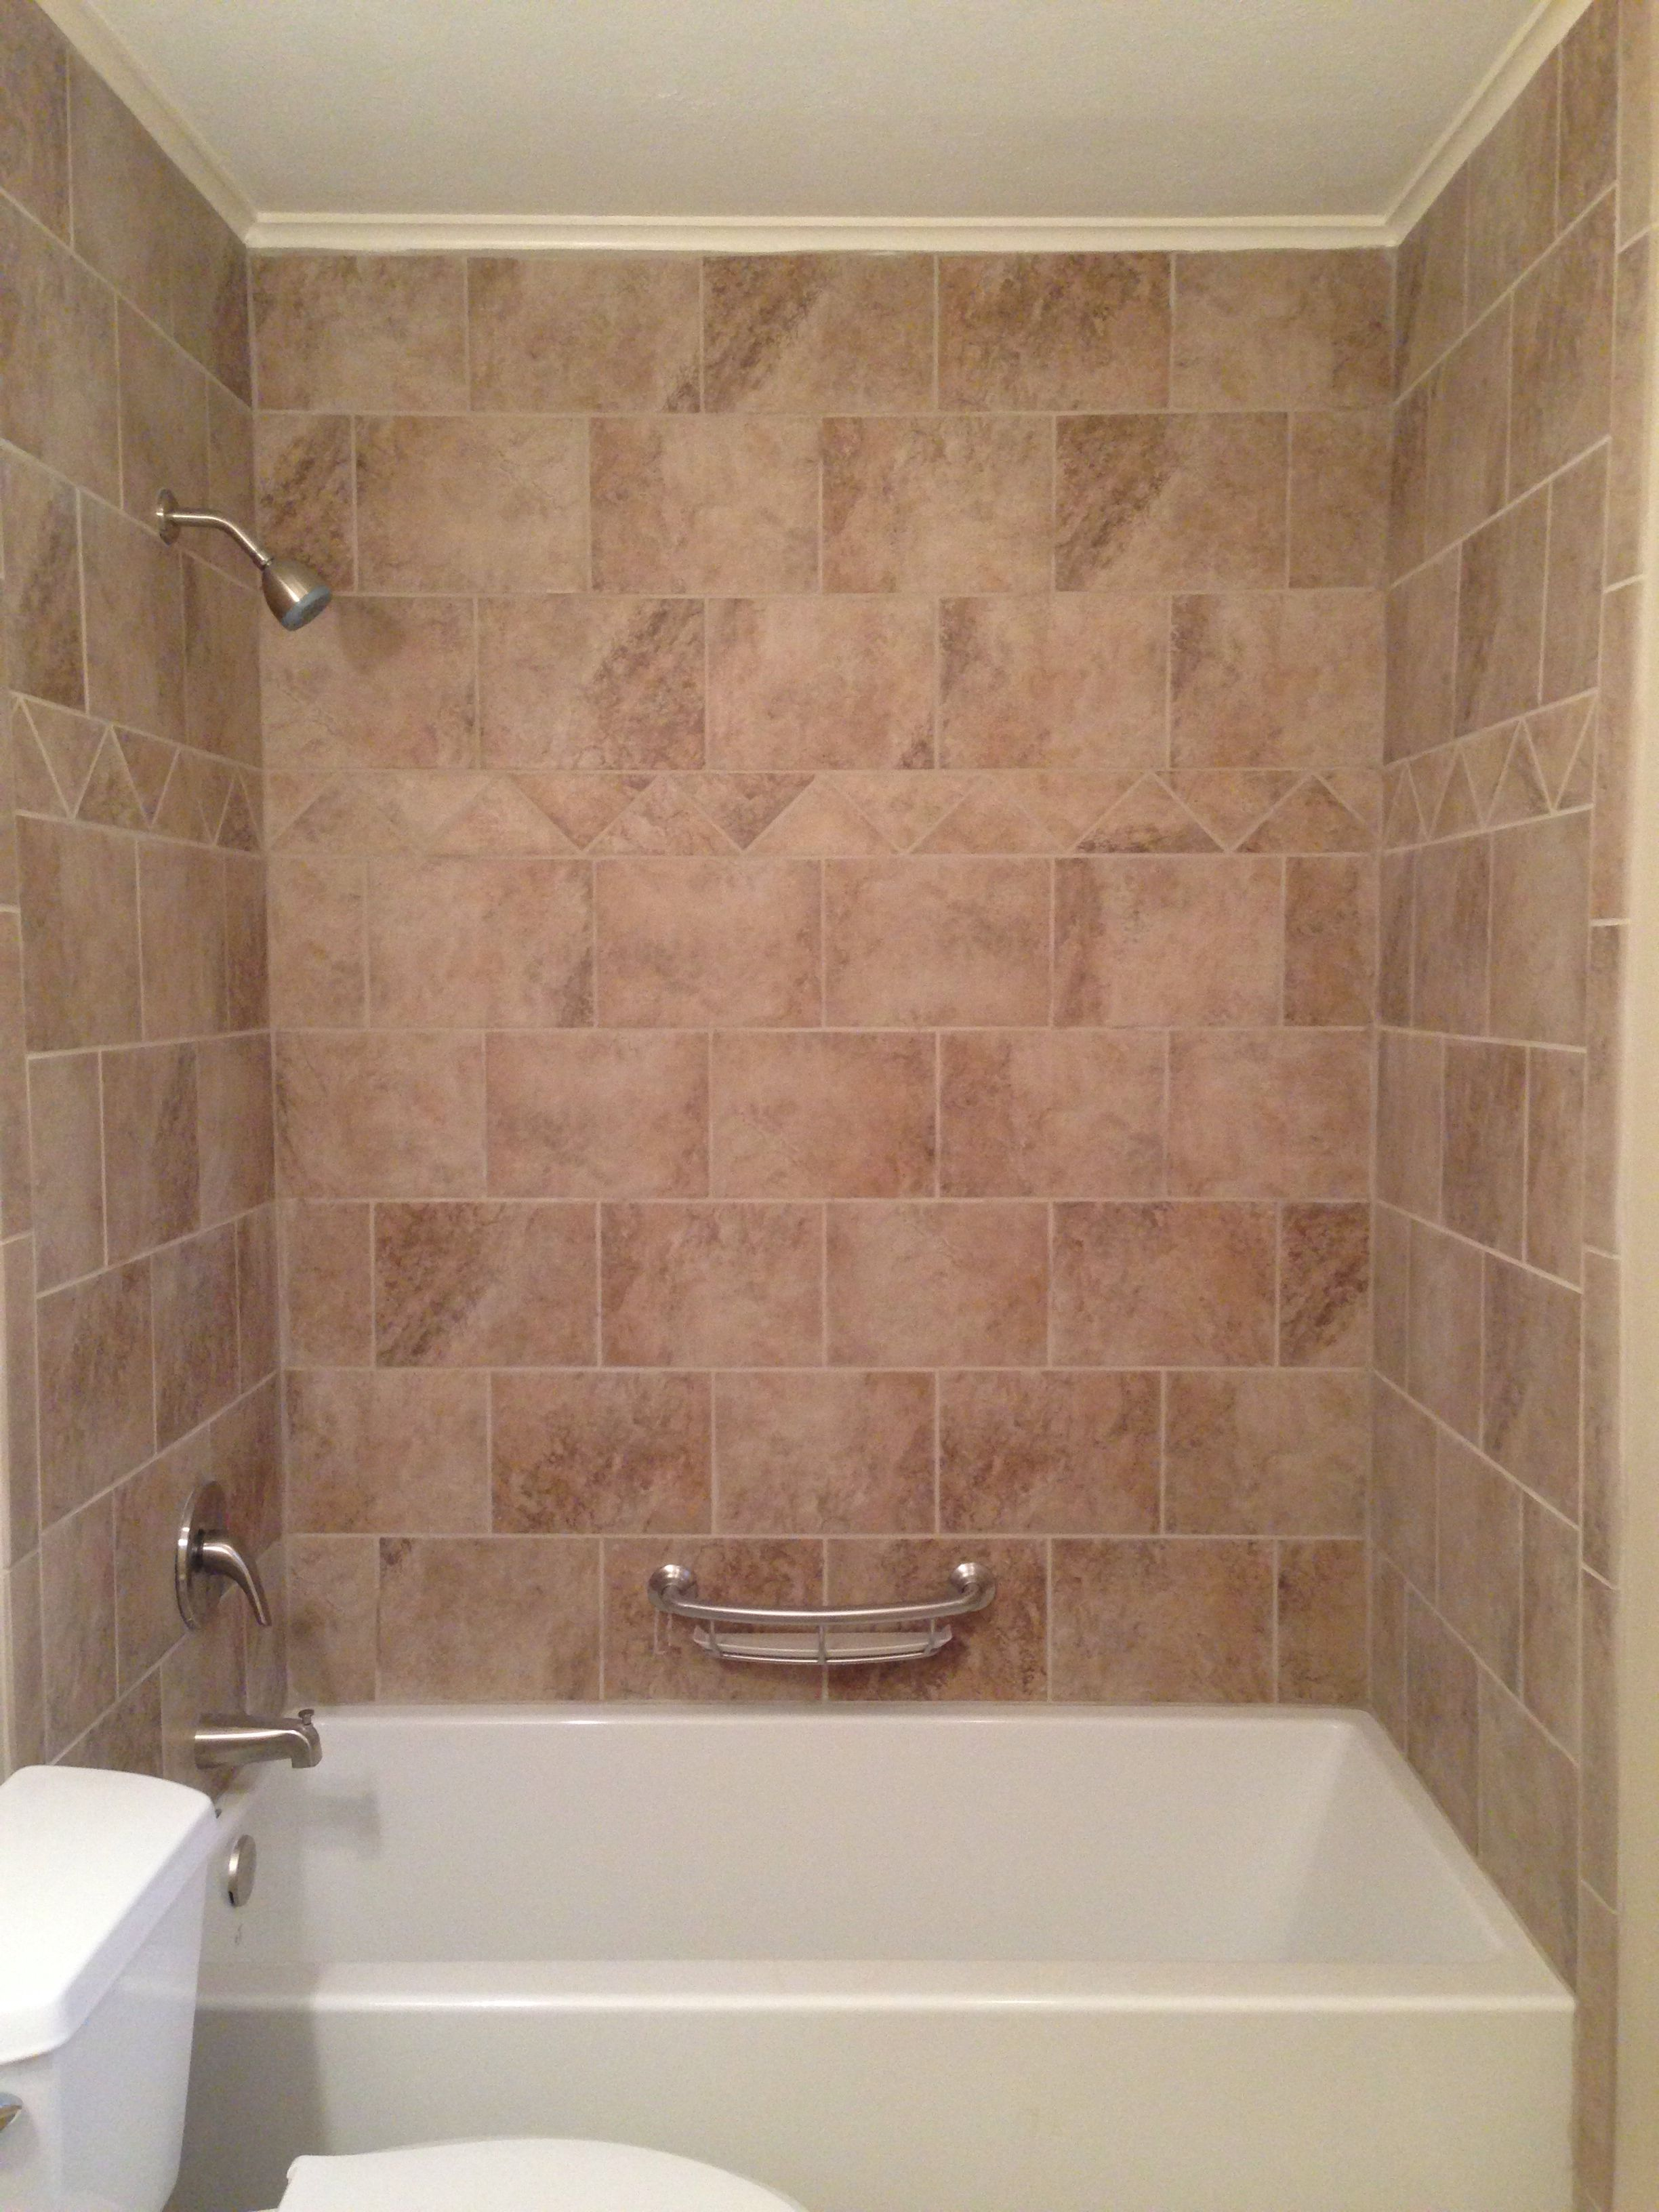 Tile surround bathtub. Beige tile around bathtub. | Our ...